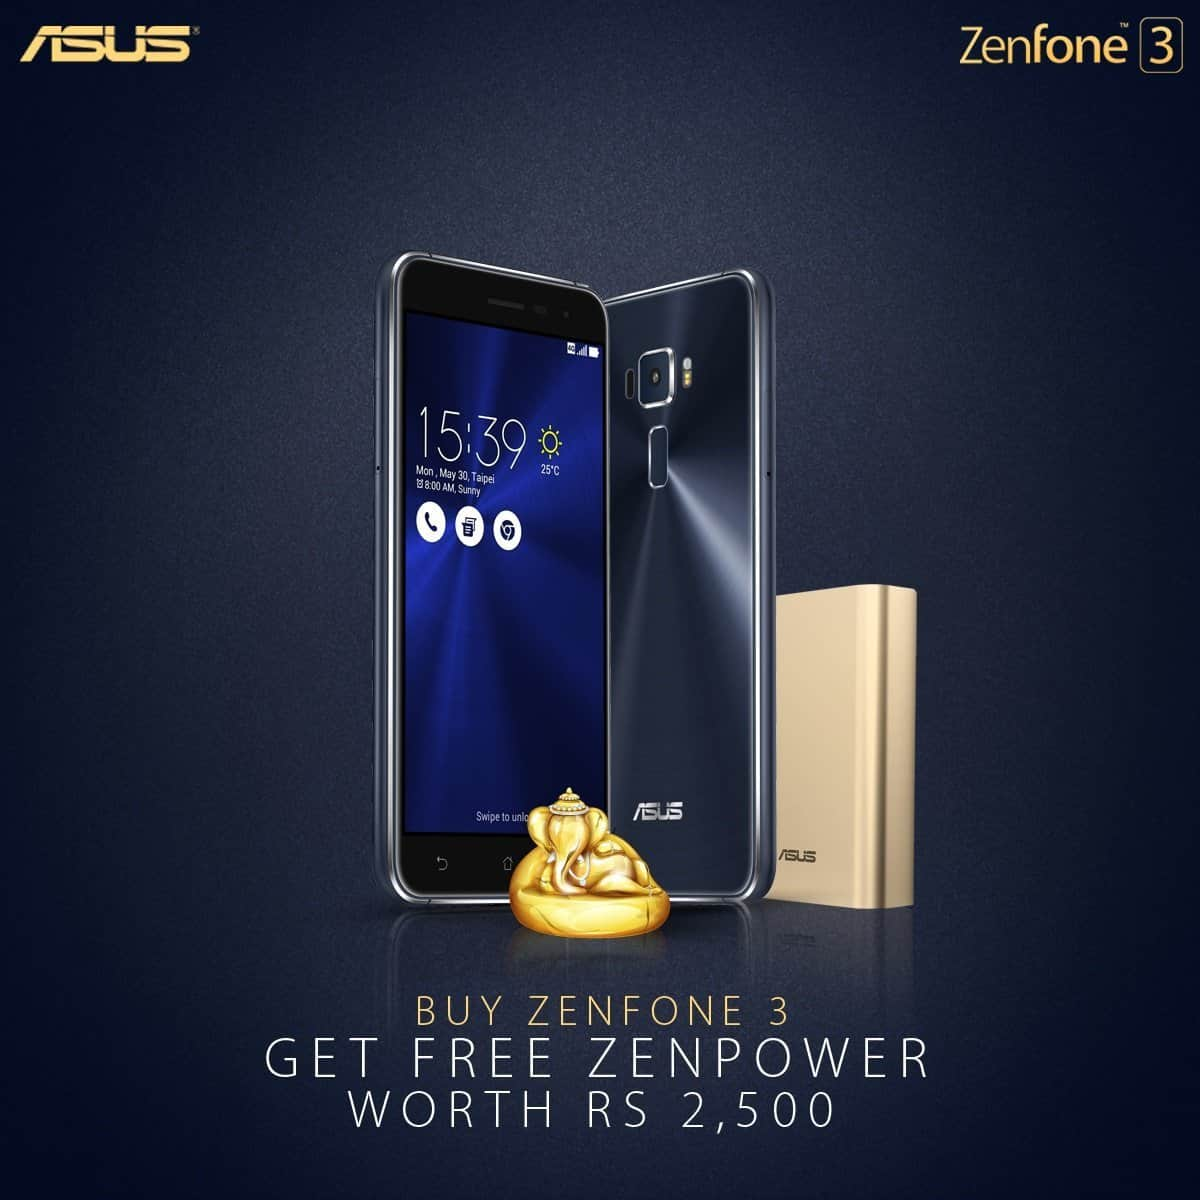 Zenfone 3 Ganesh Chaturthi offer